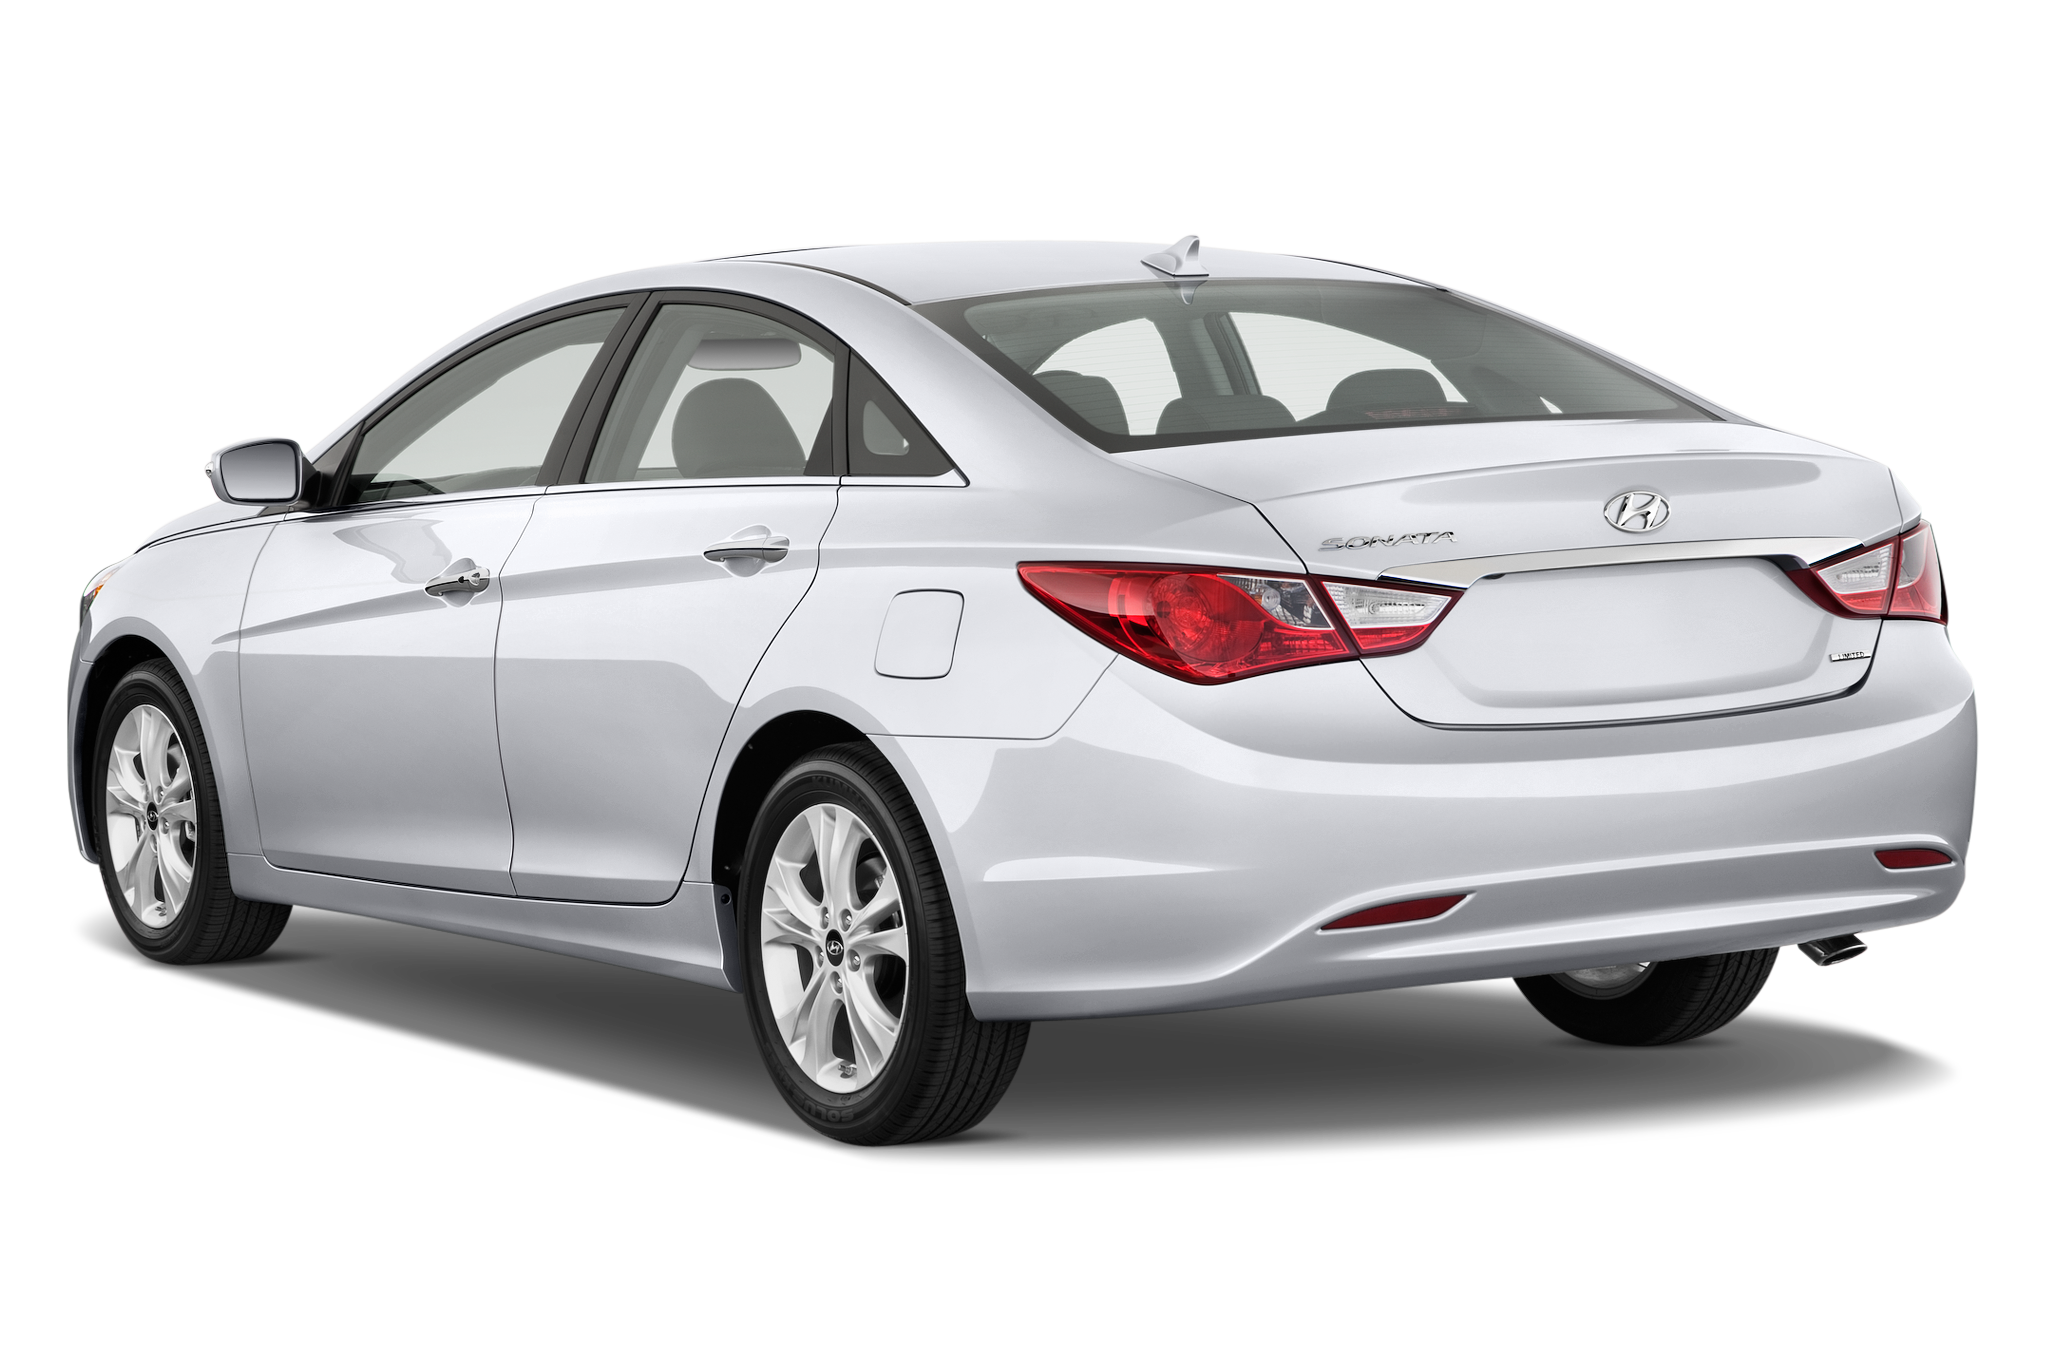 Hyundai Sonata Limited 2 0t A T 2014 International Price